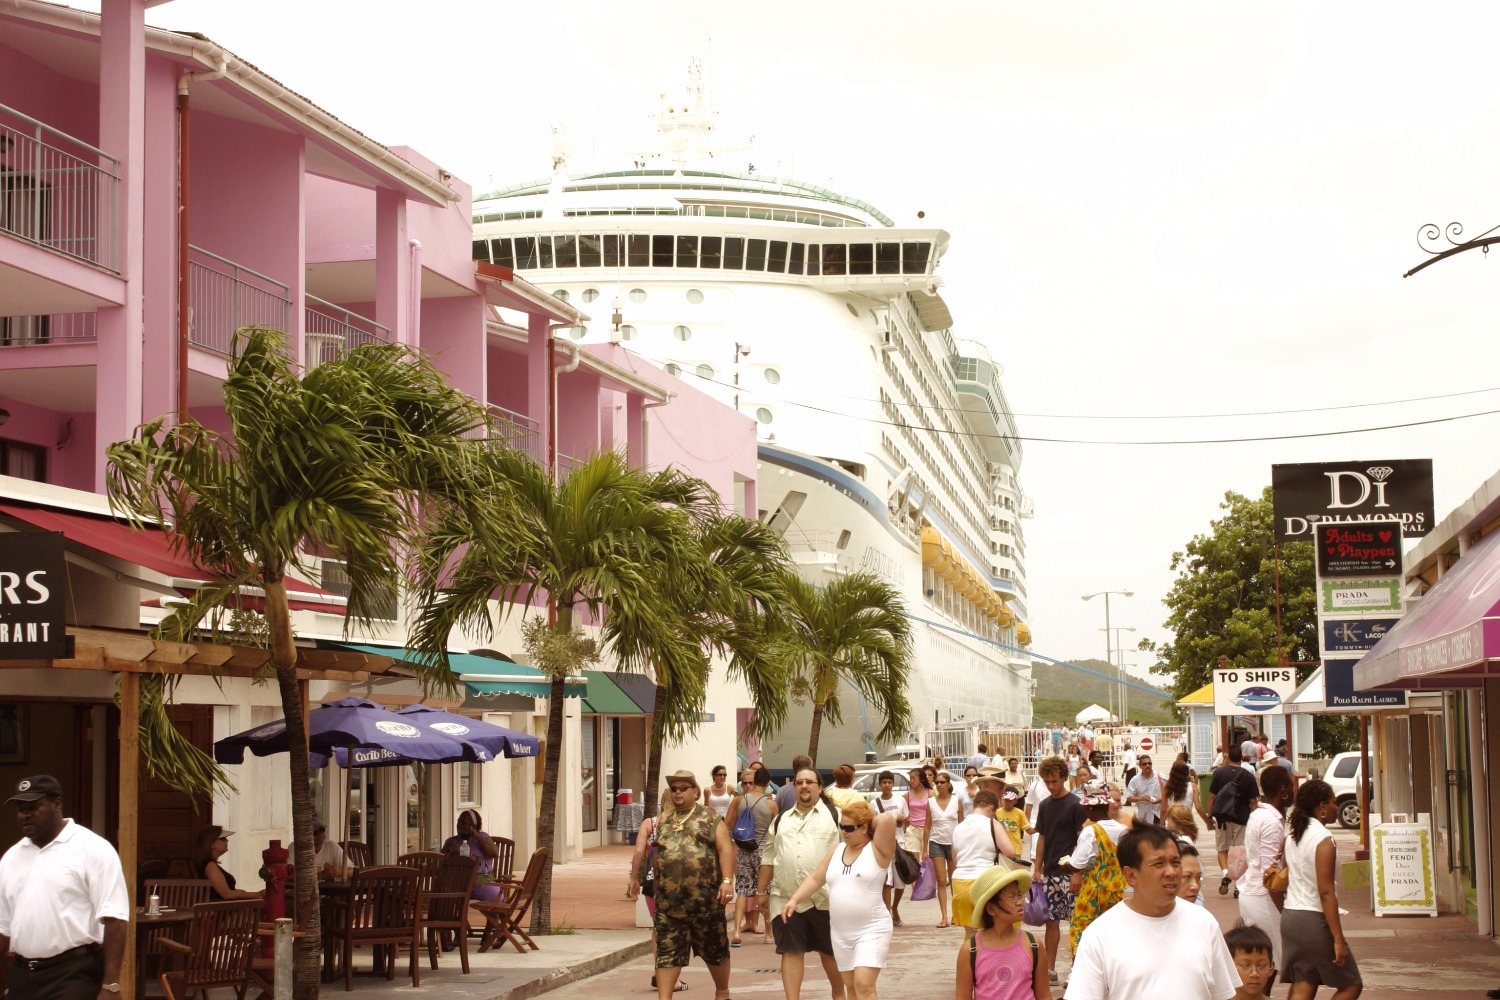 ant-270-tourists-from-cruise-ship-in-st-joihns-1_edited